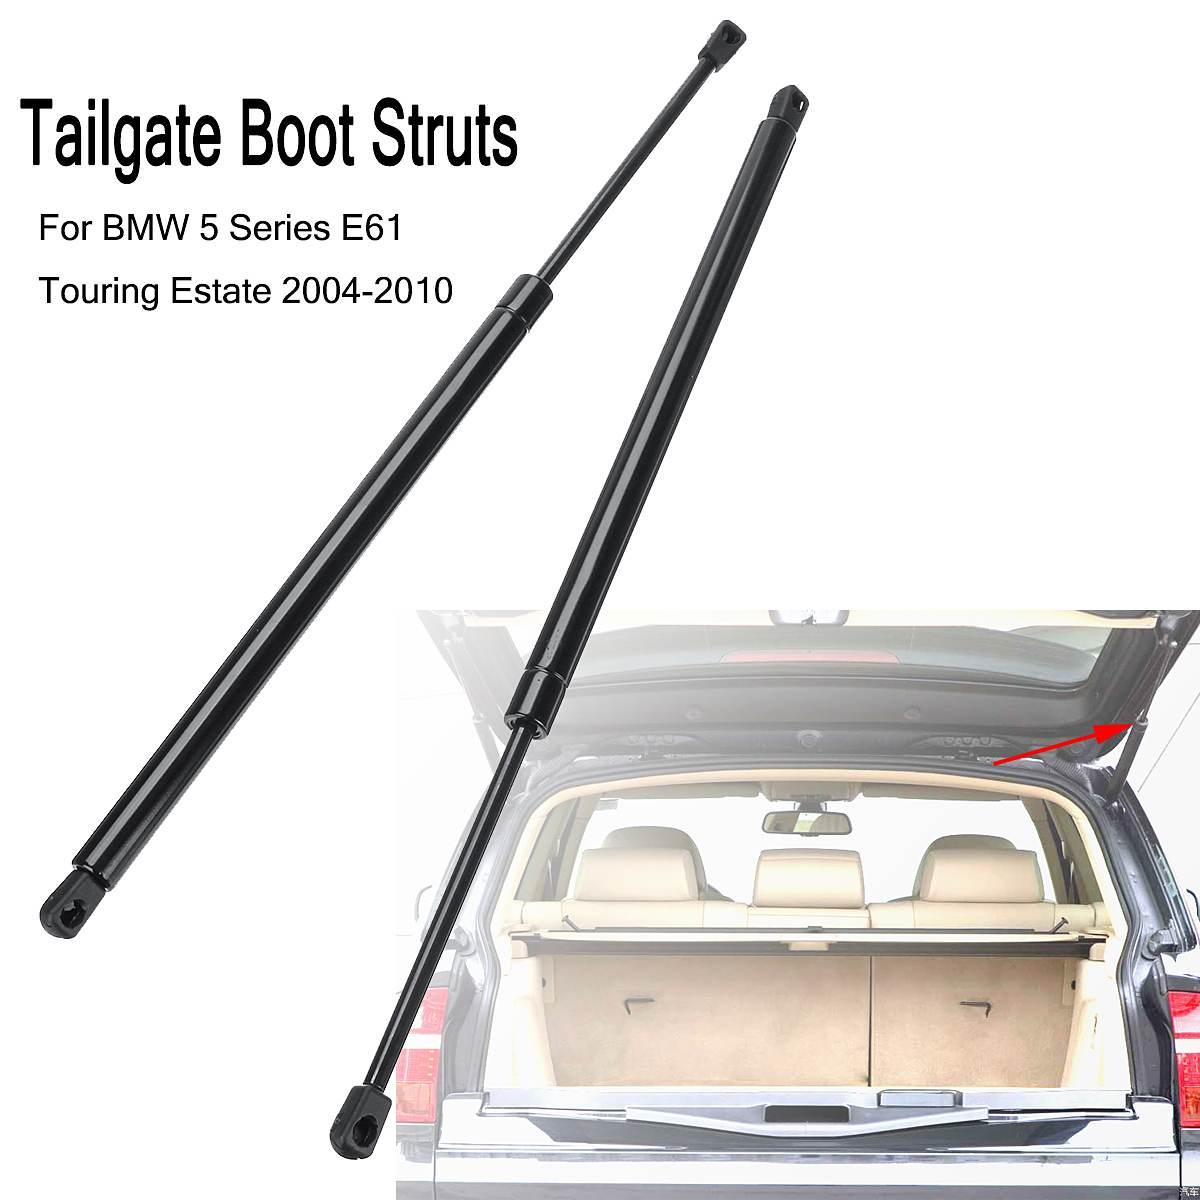 2PCS Car Rear Gas Tailgate Boot Lift Support Struts For BMW 5 Series E61  Estate 2004-2010 51247178273